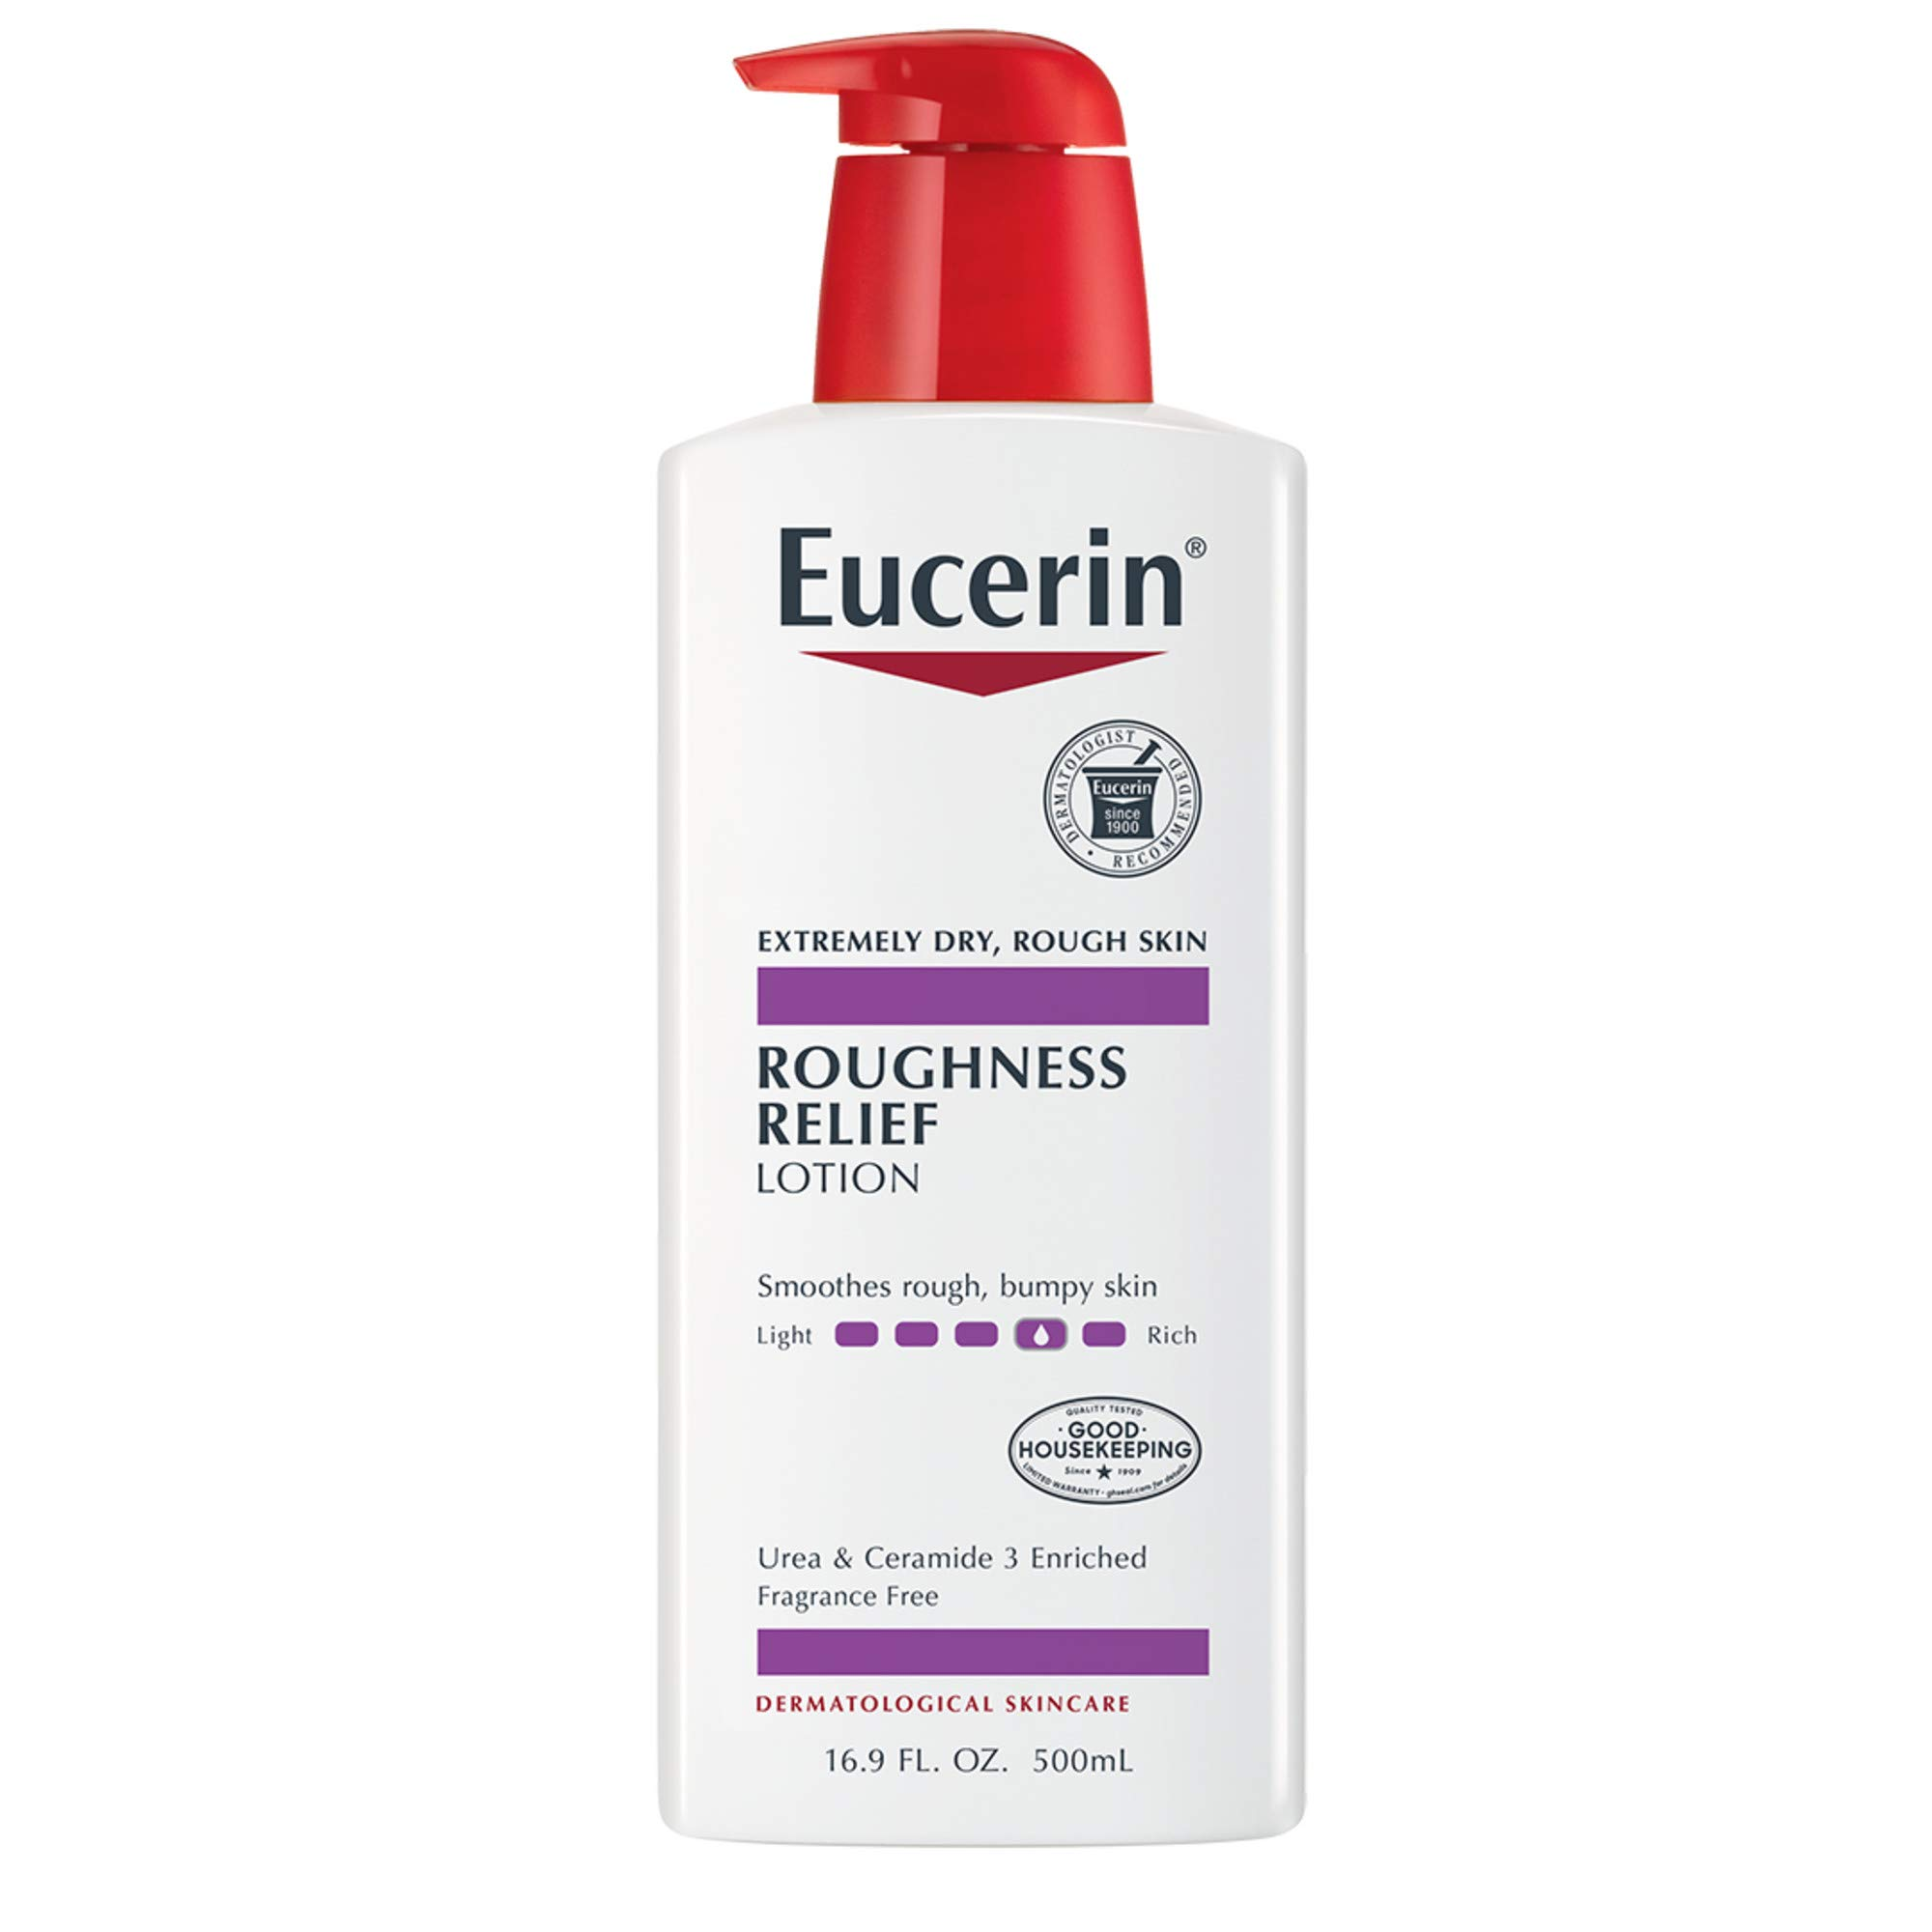 Eucerin Roughness Relief Lotion - Full Body Lotion for Extremely Dry, Rough Skin - 16.9 fl. oz. Pump Bottle